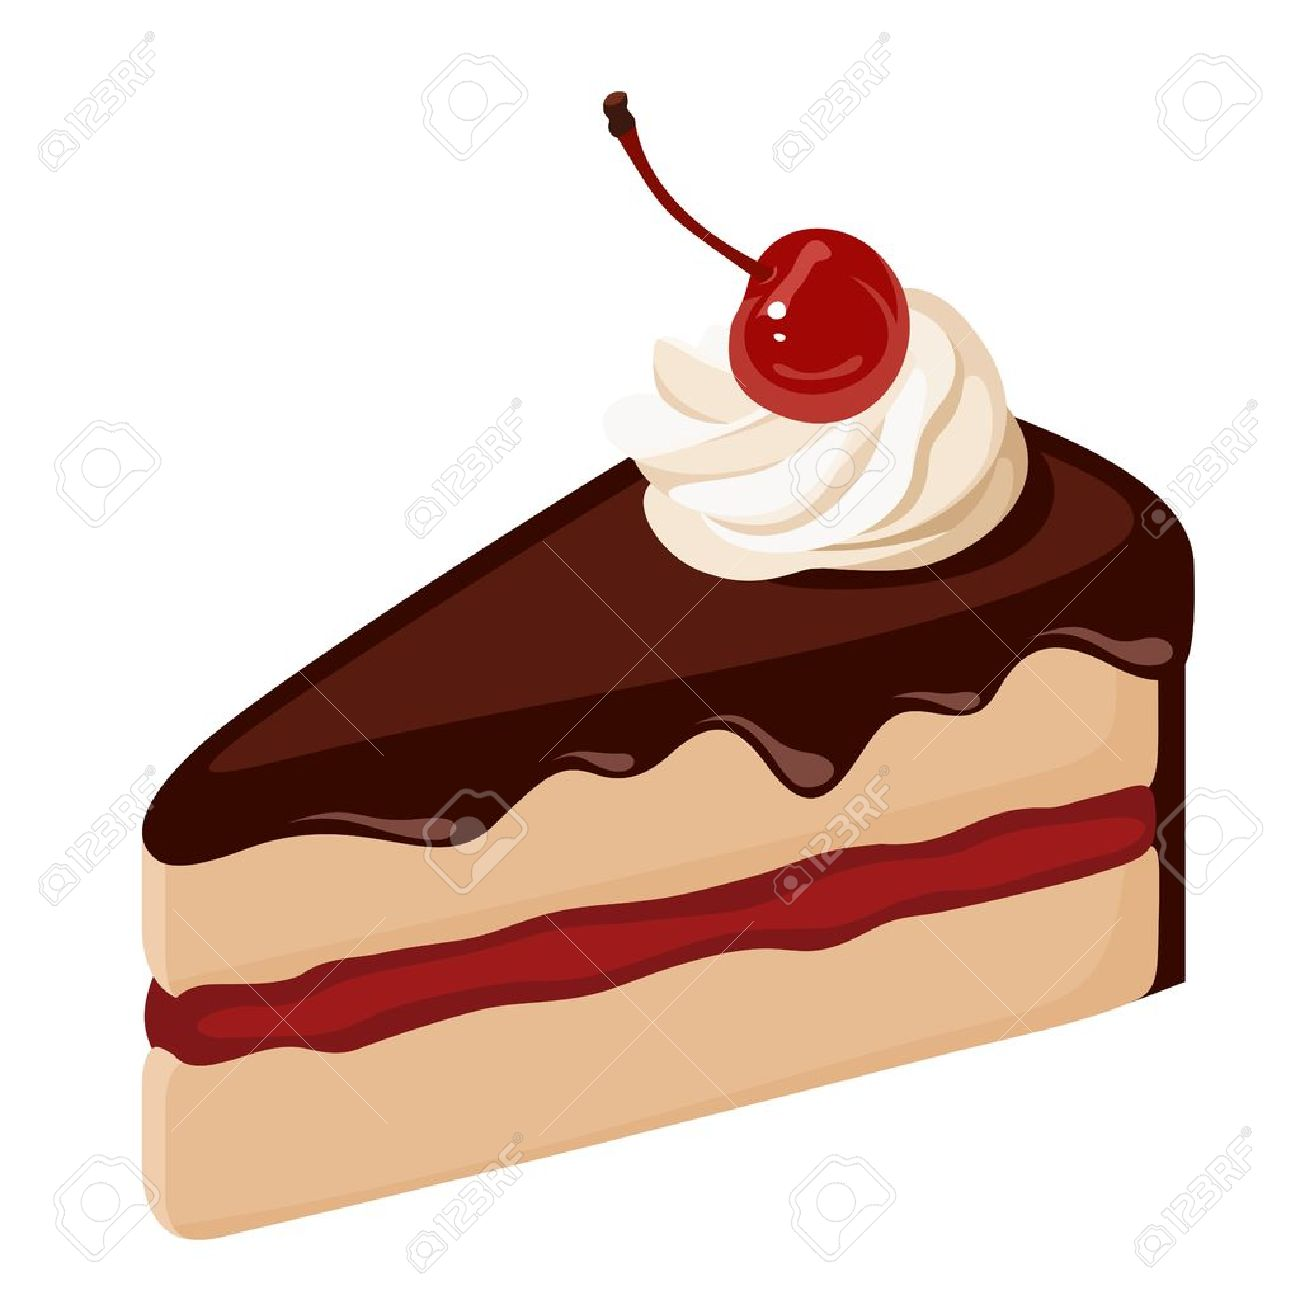 Piece Of Cake Cliparts Stock Vector And Royalty Free Piece Cake Slice Clipart Piece